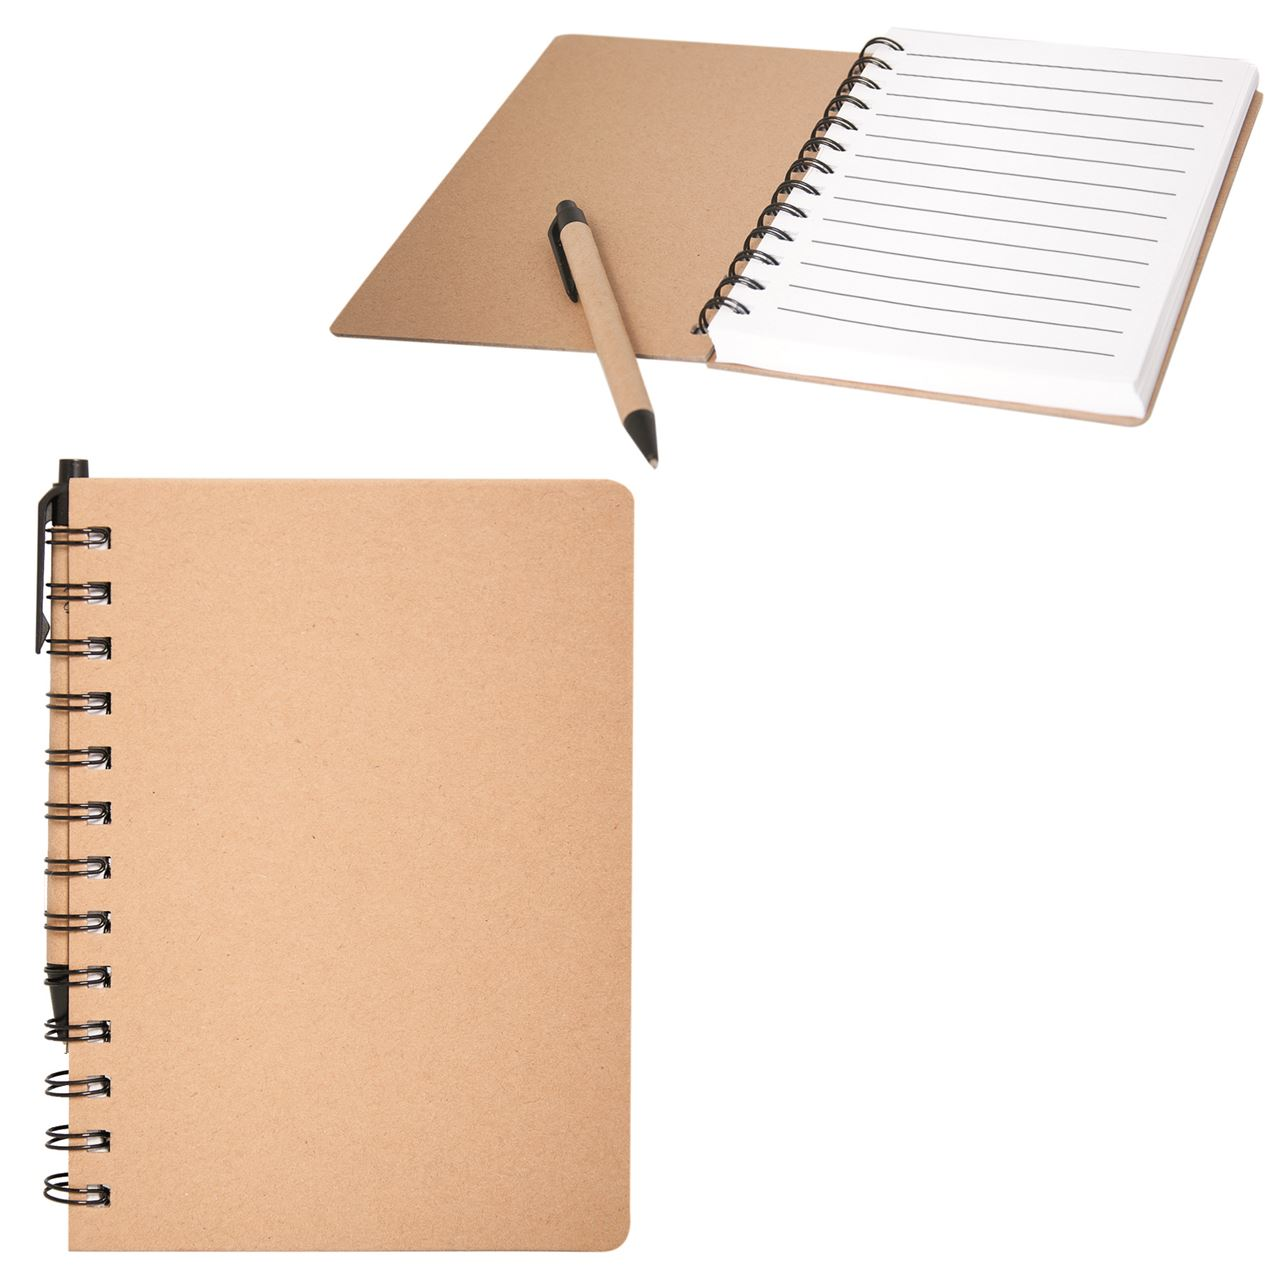 Picture of Recycled Cardboard Notebook